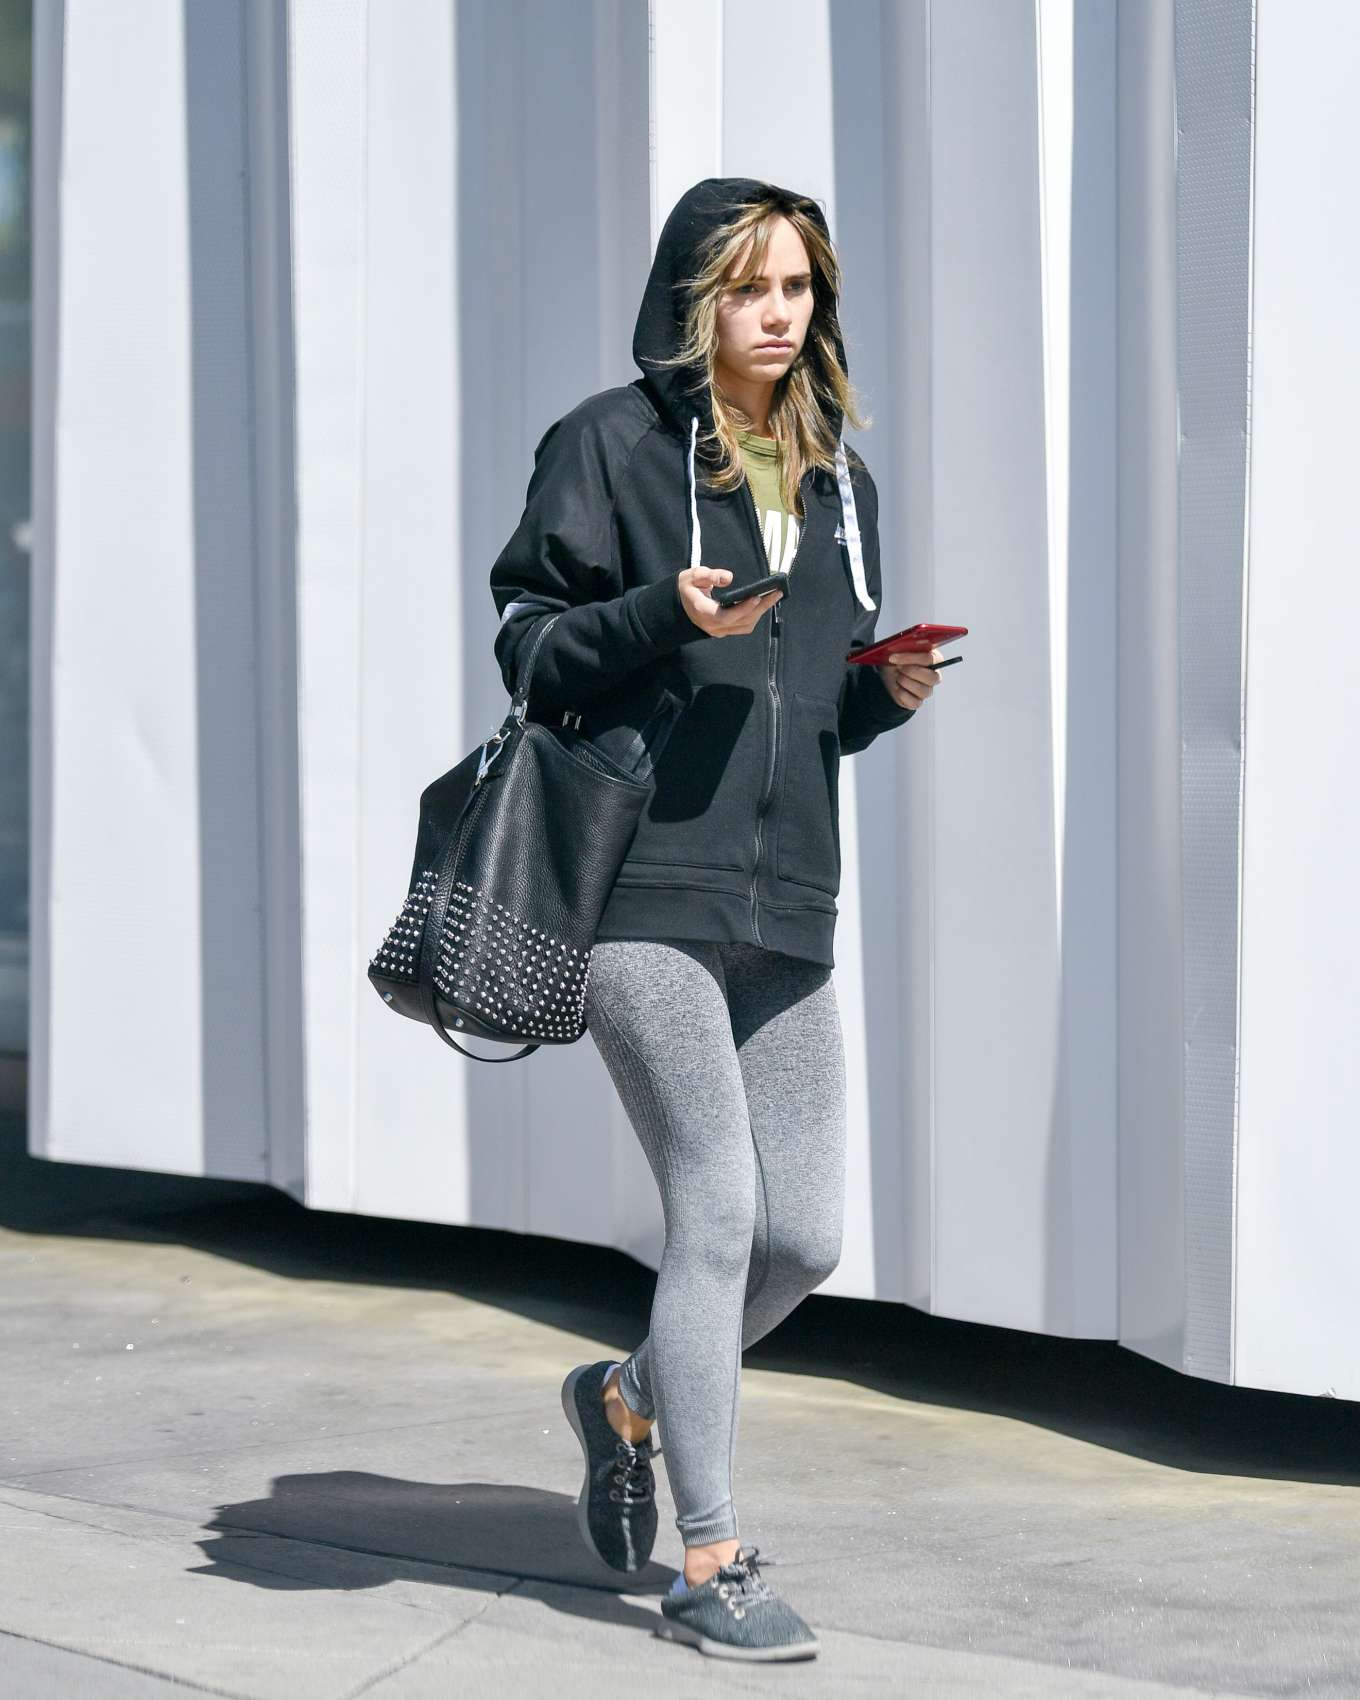 Suki Waterhouse 2019 : Suki Waterhouse: Leaving equinox fitness -01